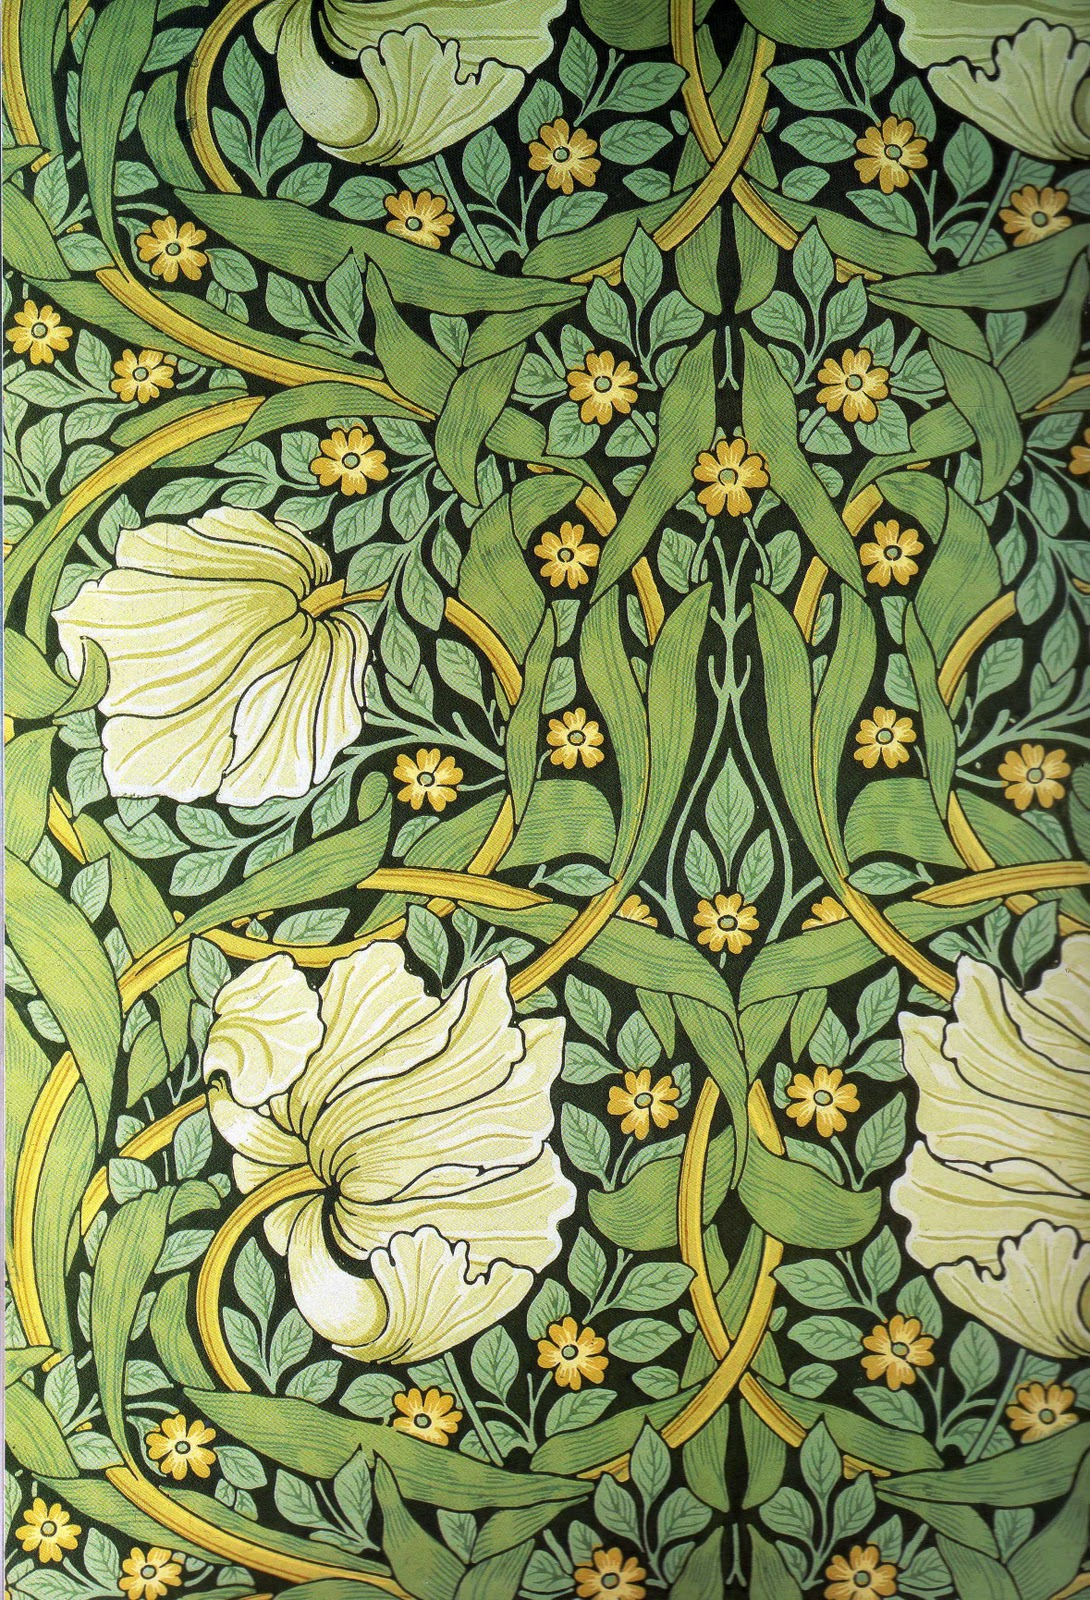 Scheele's Green pigmented wall paper.